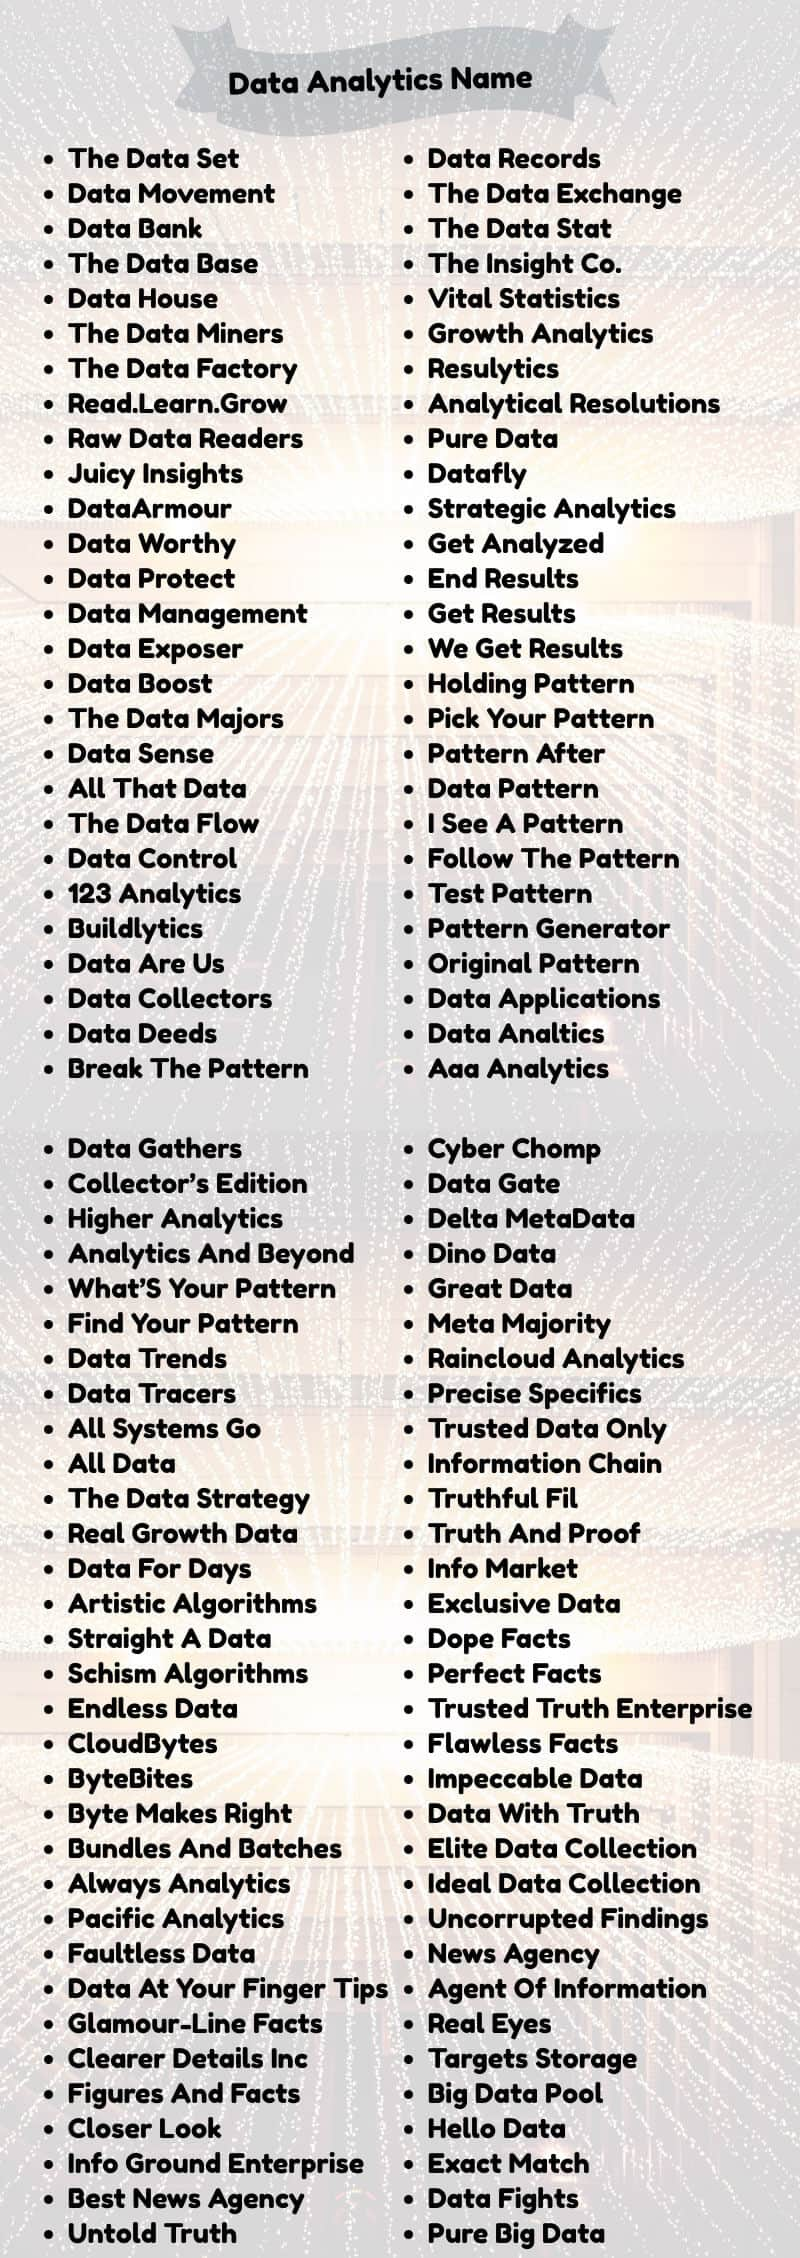 Data Analytics Team Names: List of ideas for names